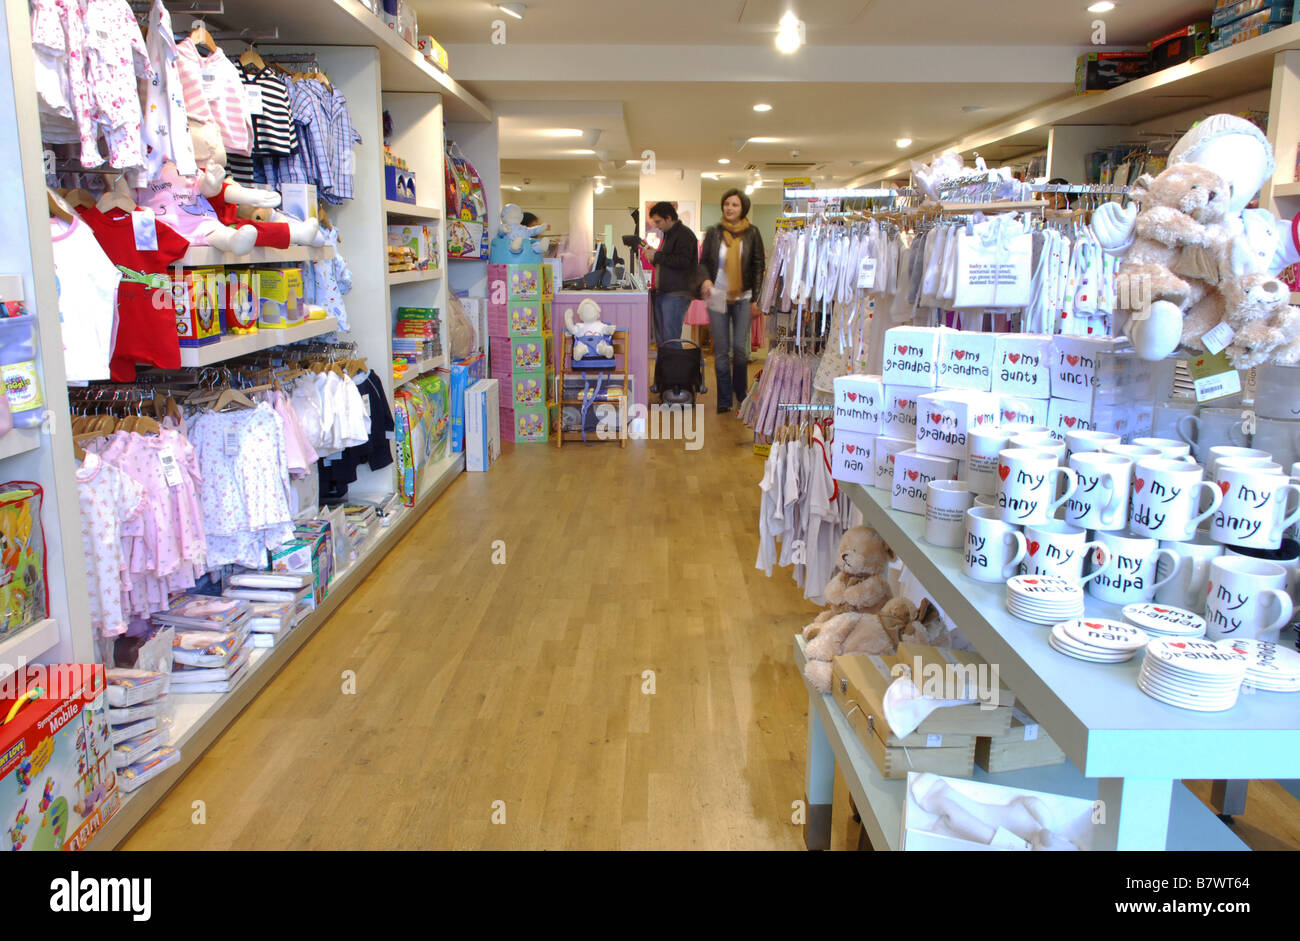 Shelving And Display Racks Stocked With Baby Clothing For Sale In